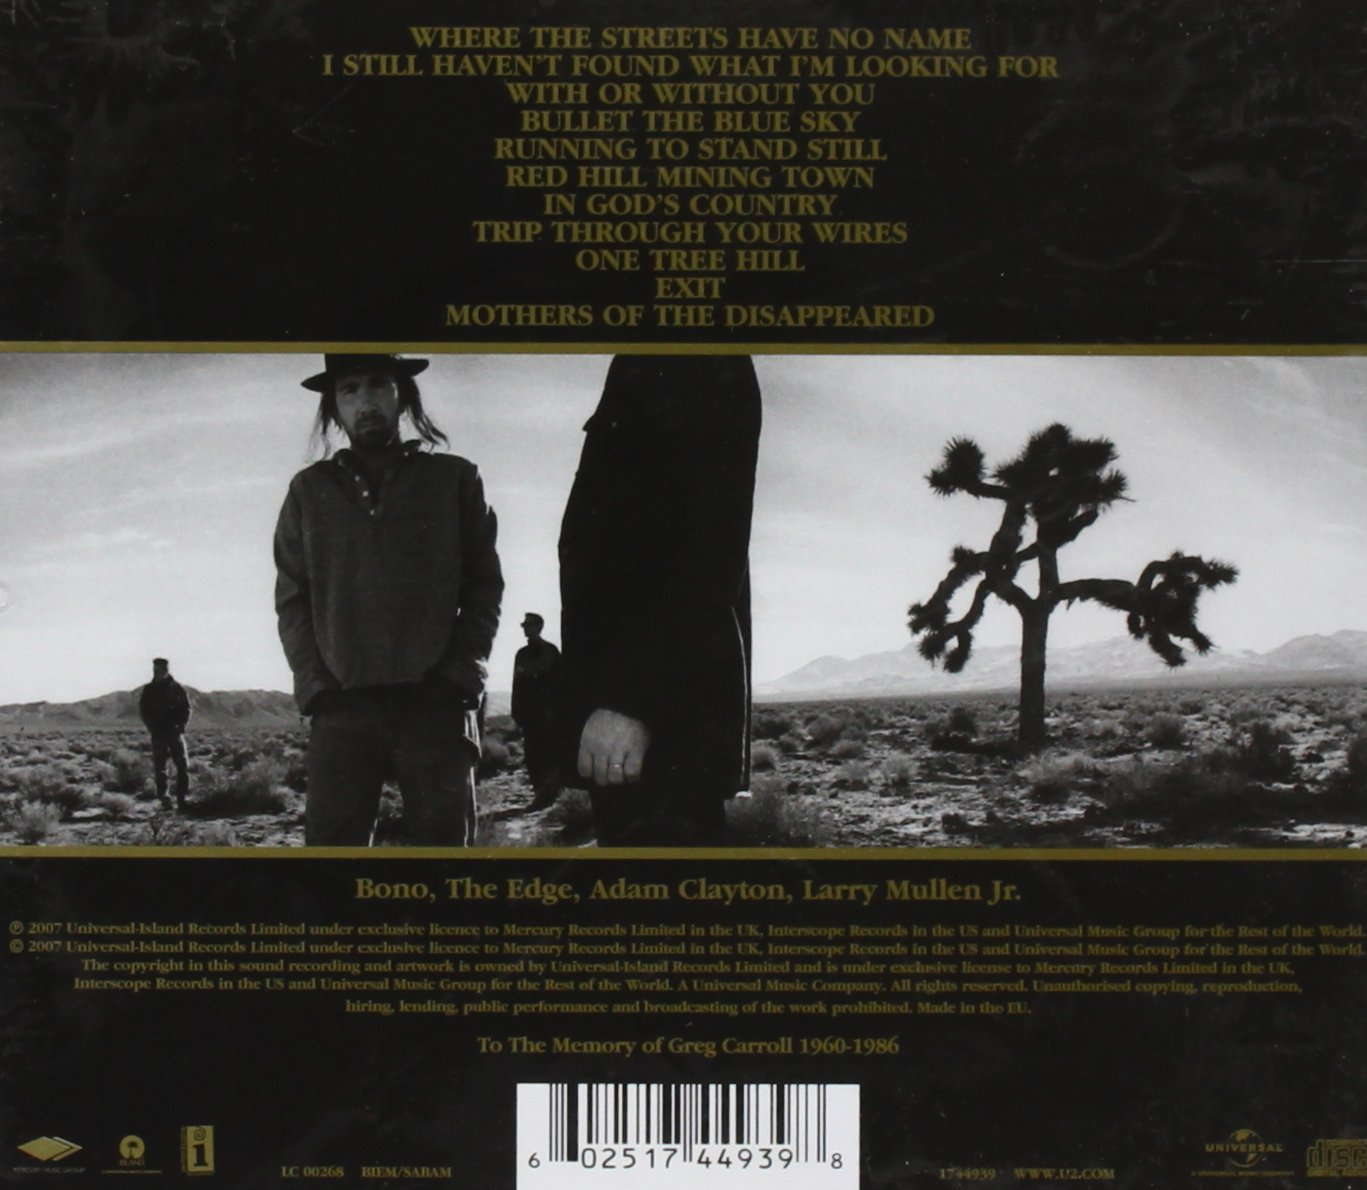 Song Joshua Tree u2 The Joshua Tree